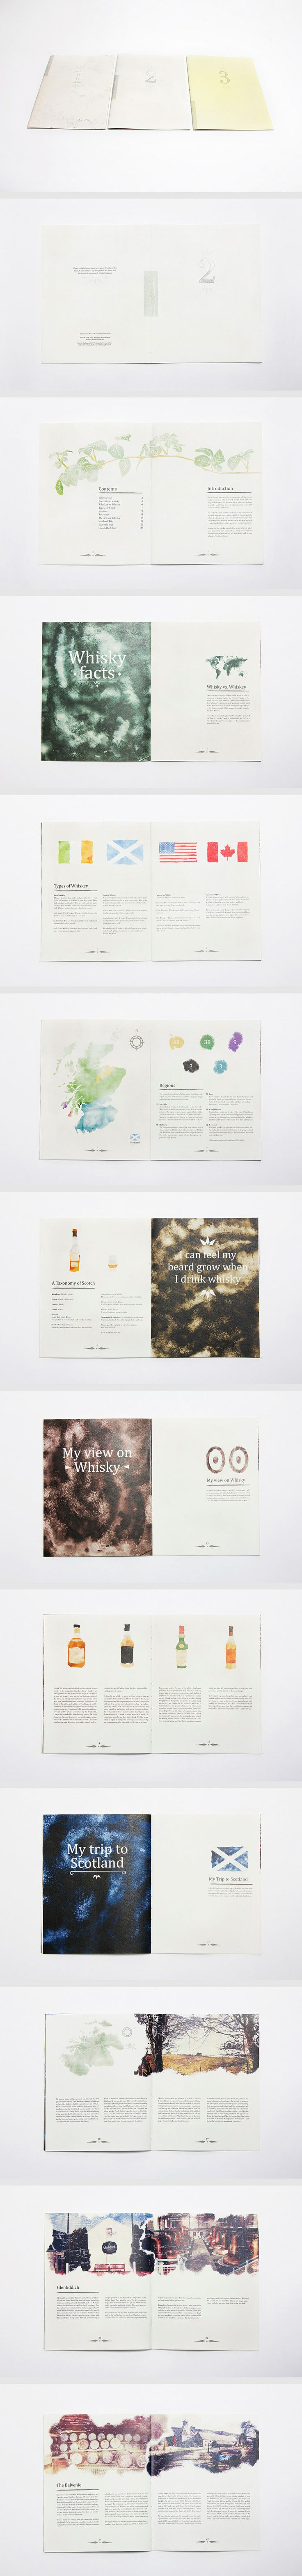 The Water of Life - Book 2 layout by Christer Dahlslett (via Creattica)